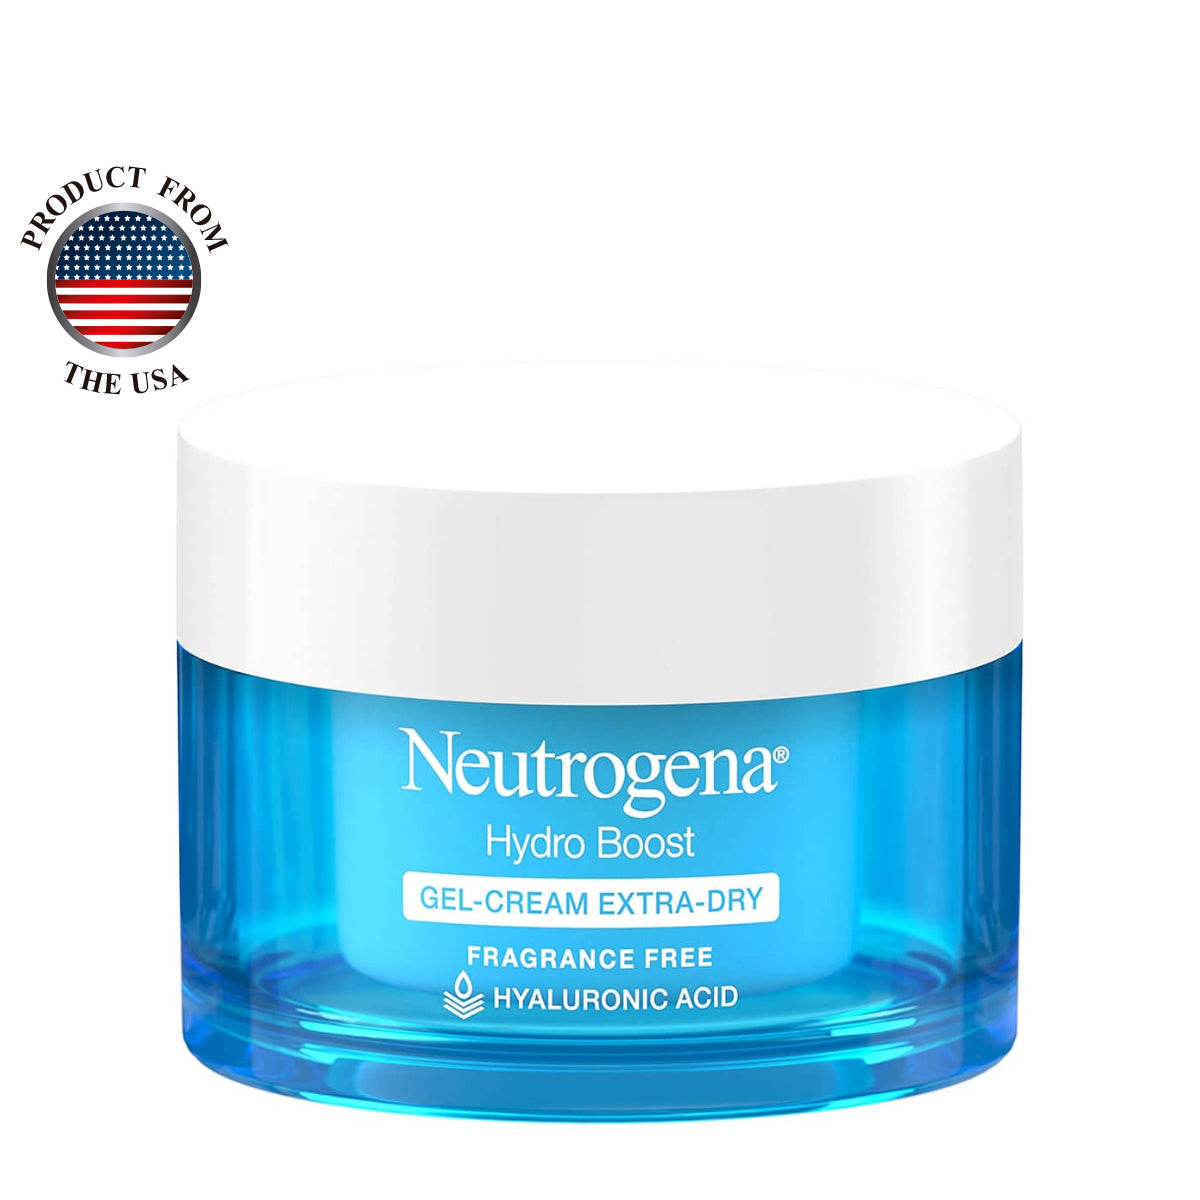 Neutrogena Hydro Boost Gel-Cream with Hyaluronic Acid for Extra Dry Skin USA